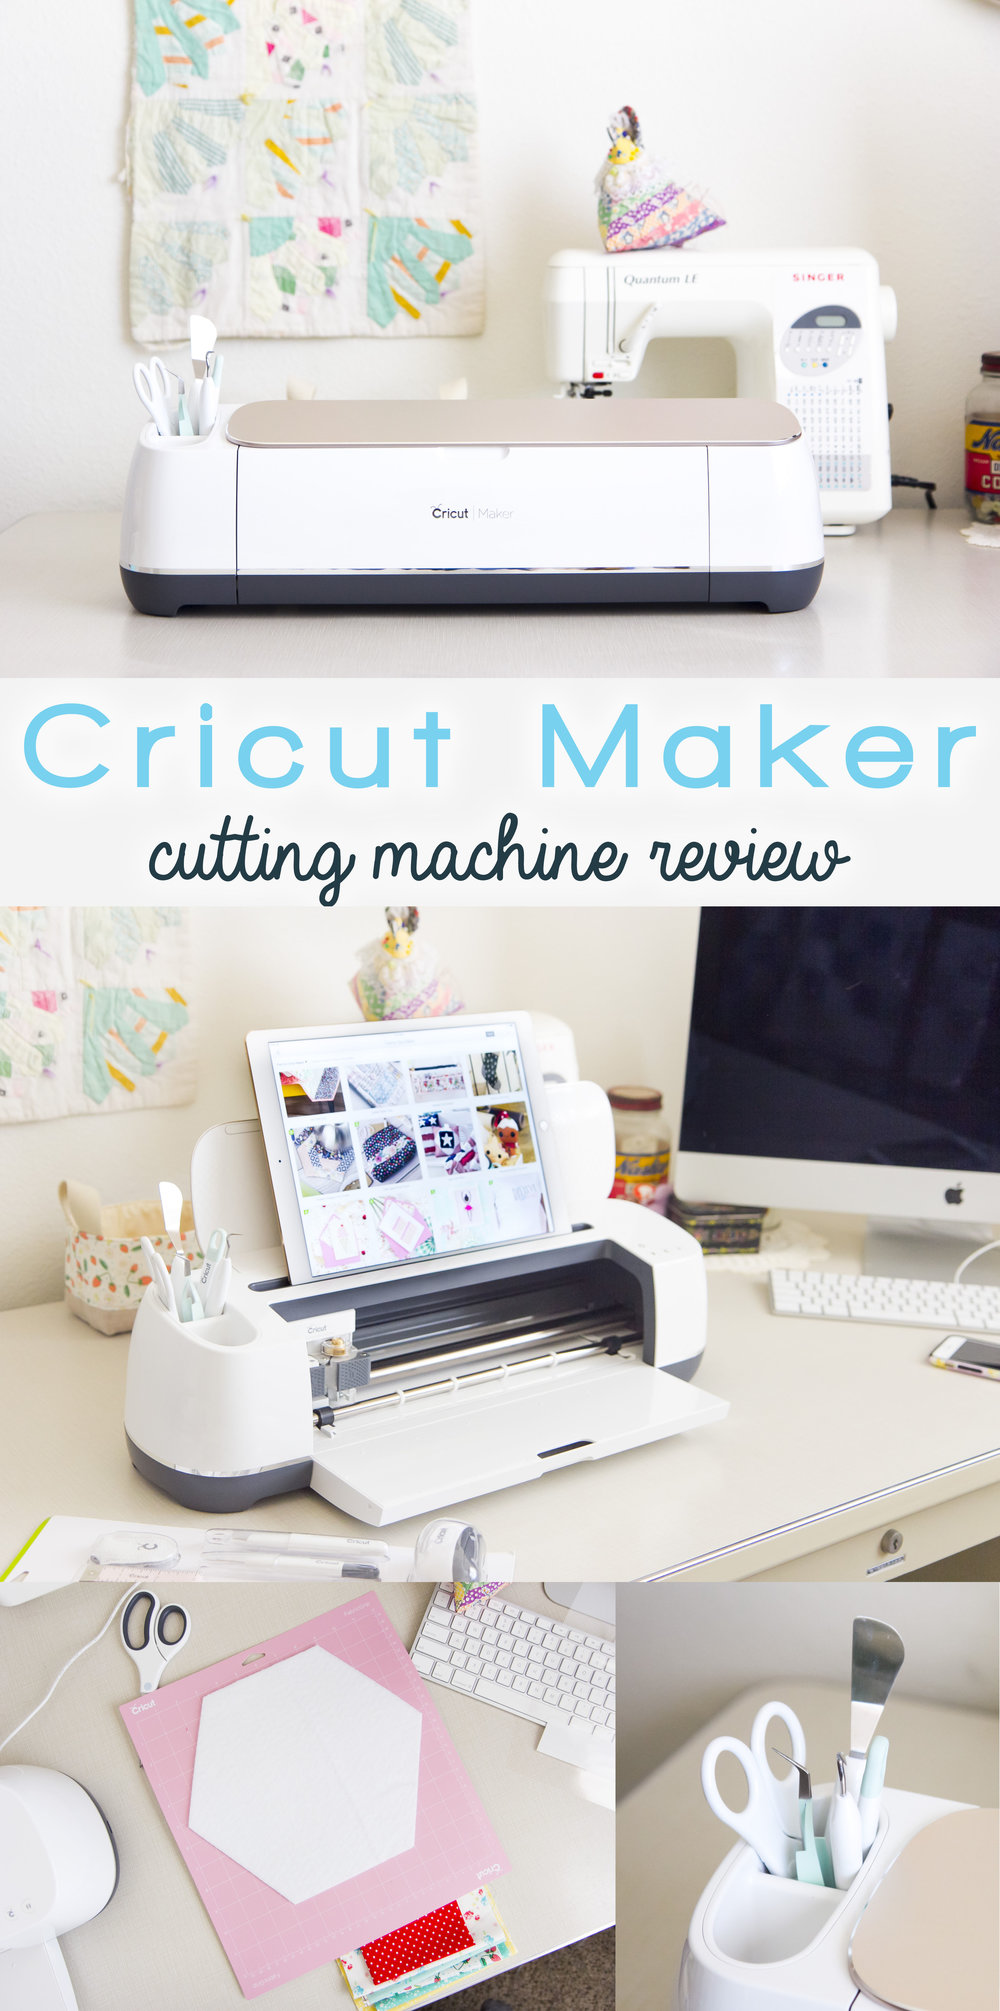 Cricut_Maker_2018031900_Pinterest